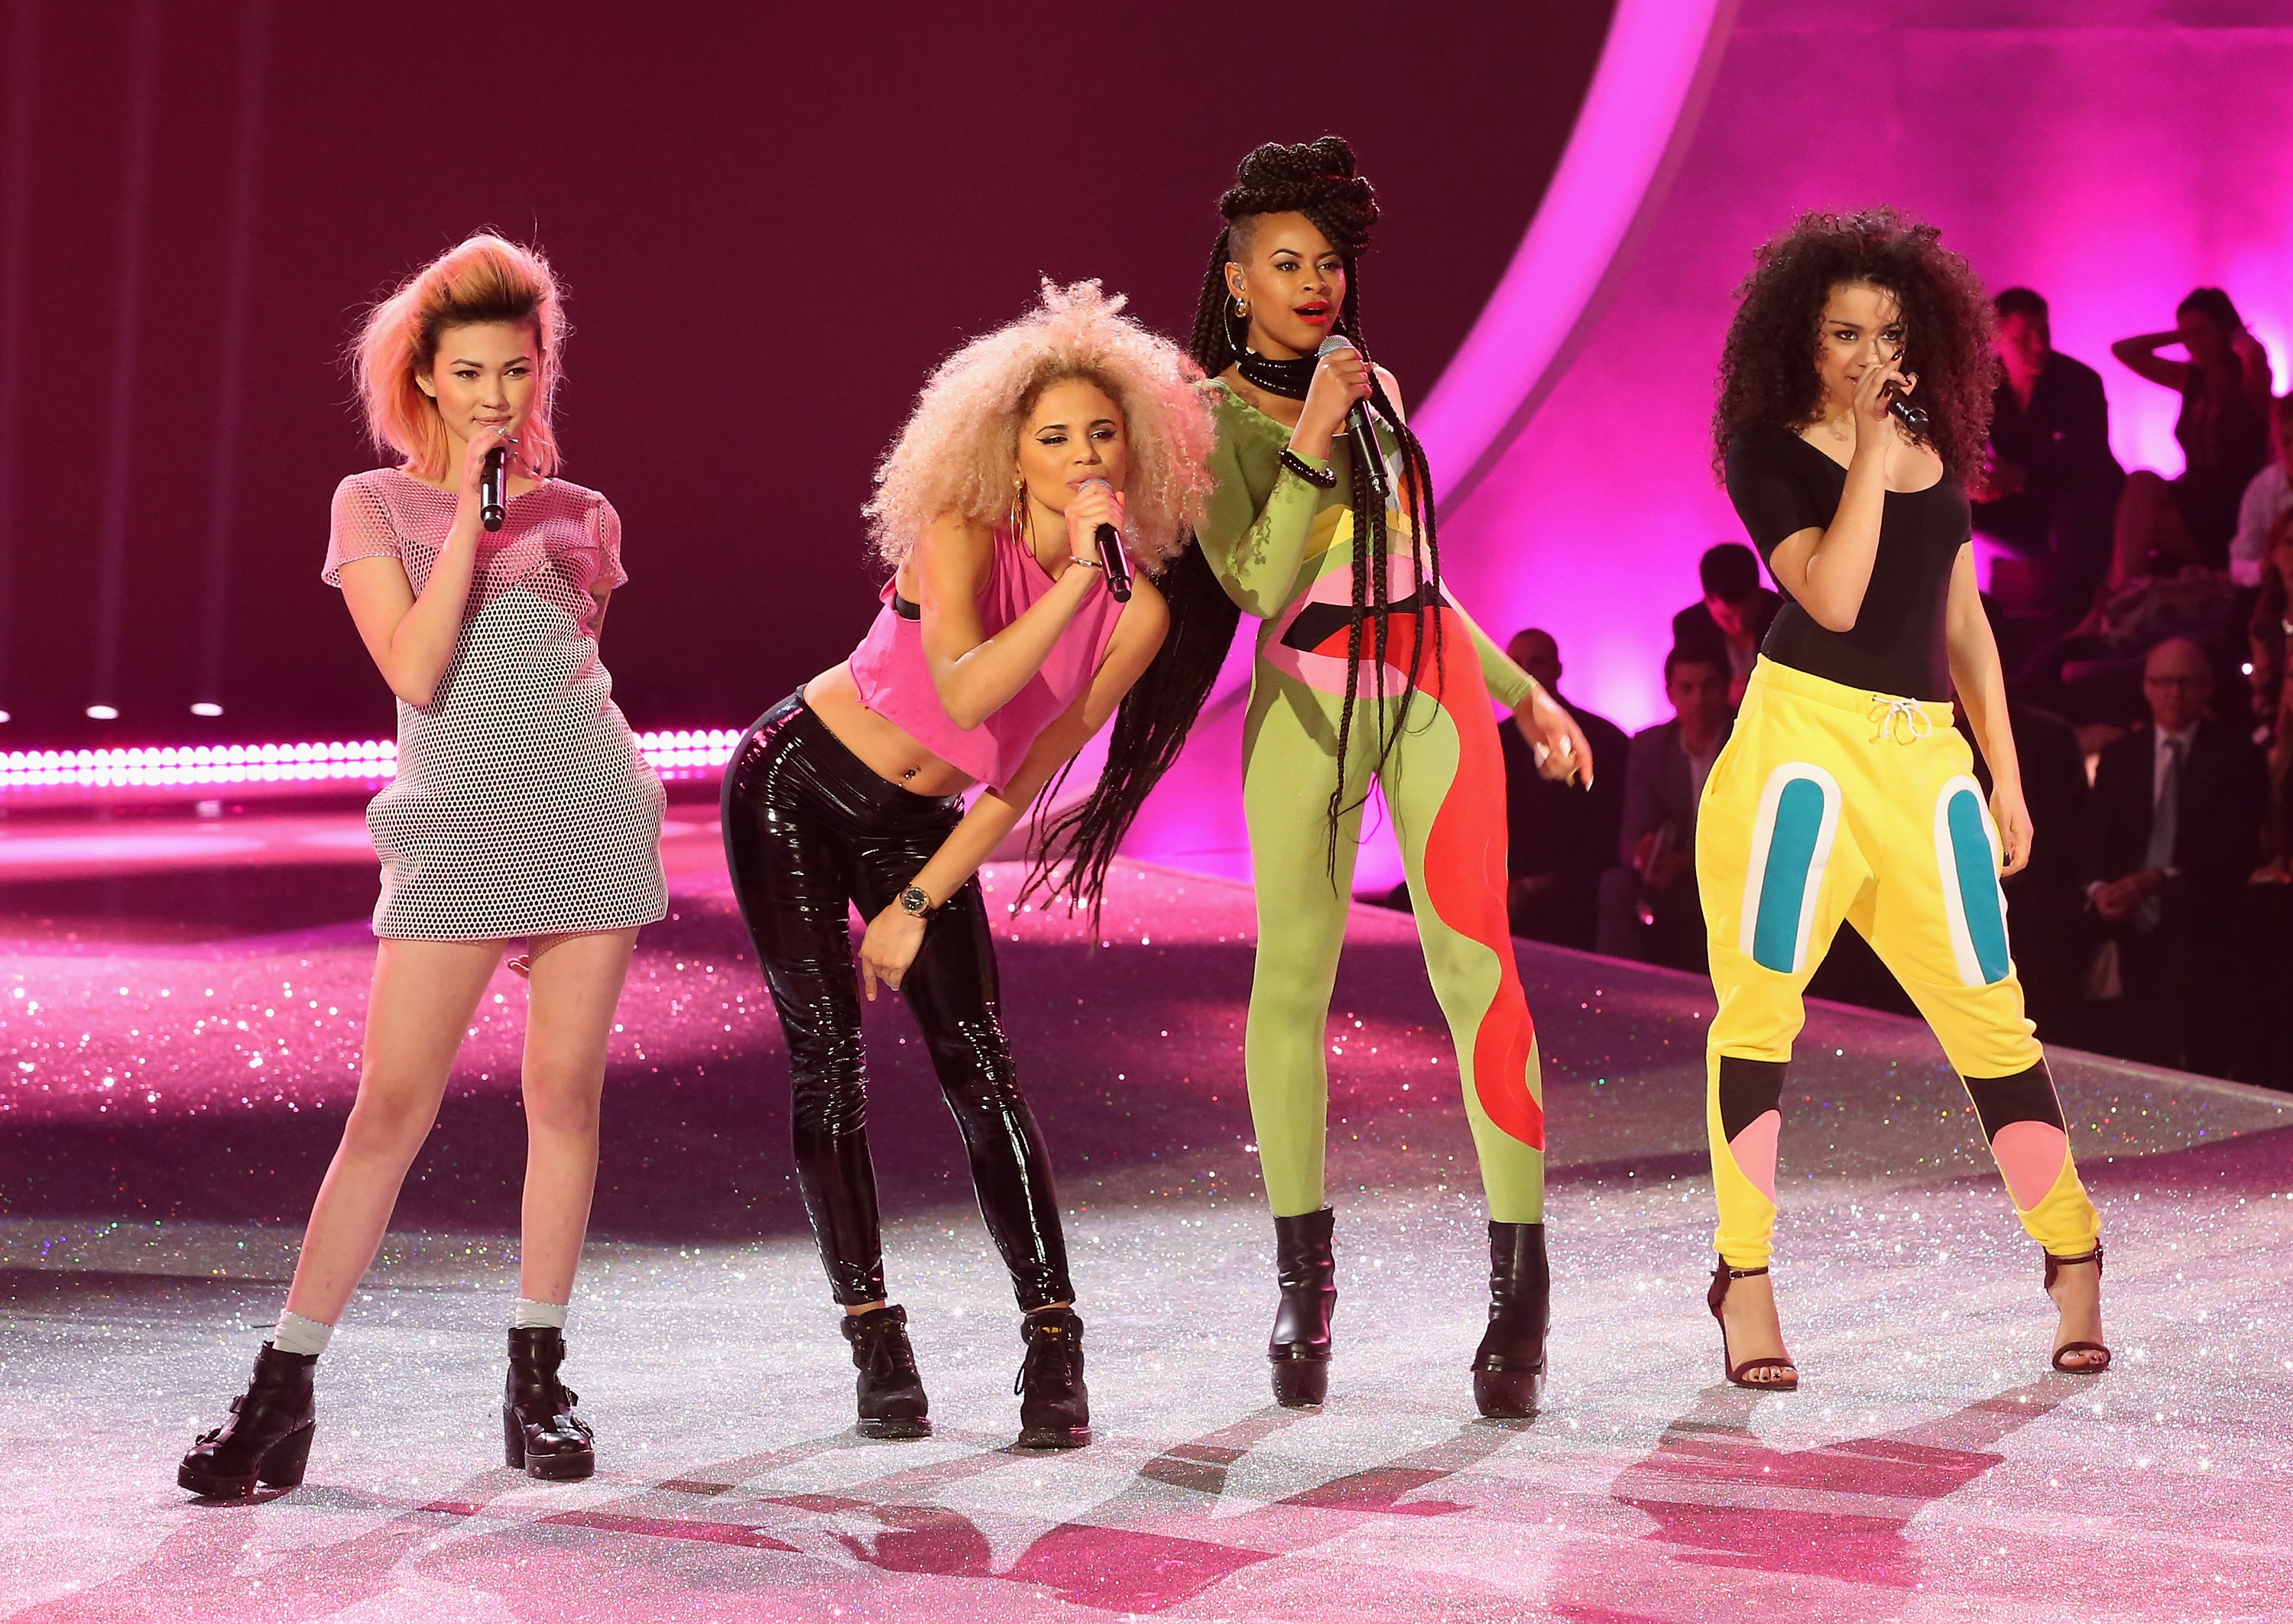 Victoria's Secret Fashion Show 2013 Music acts to emerge in